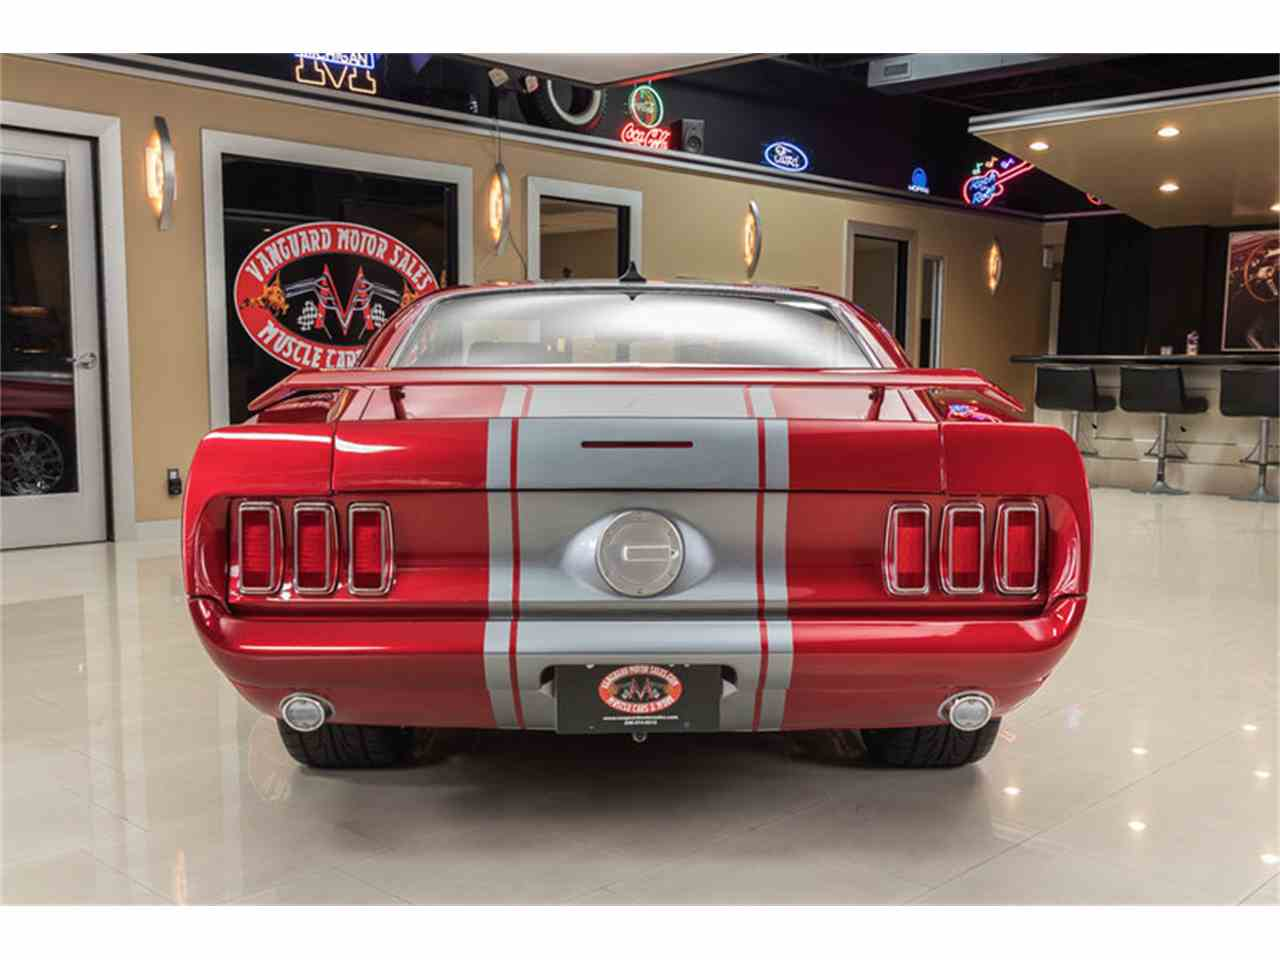 Picture of 1969 ford mustang fastback exterior - Photo 13